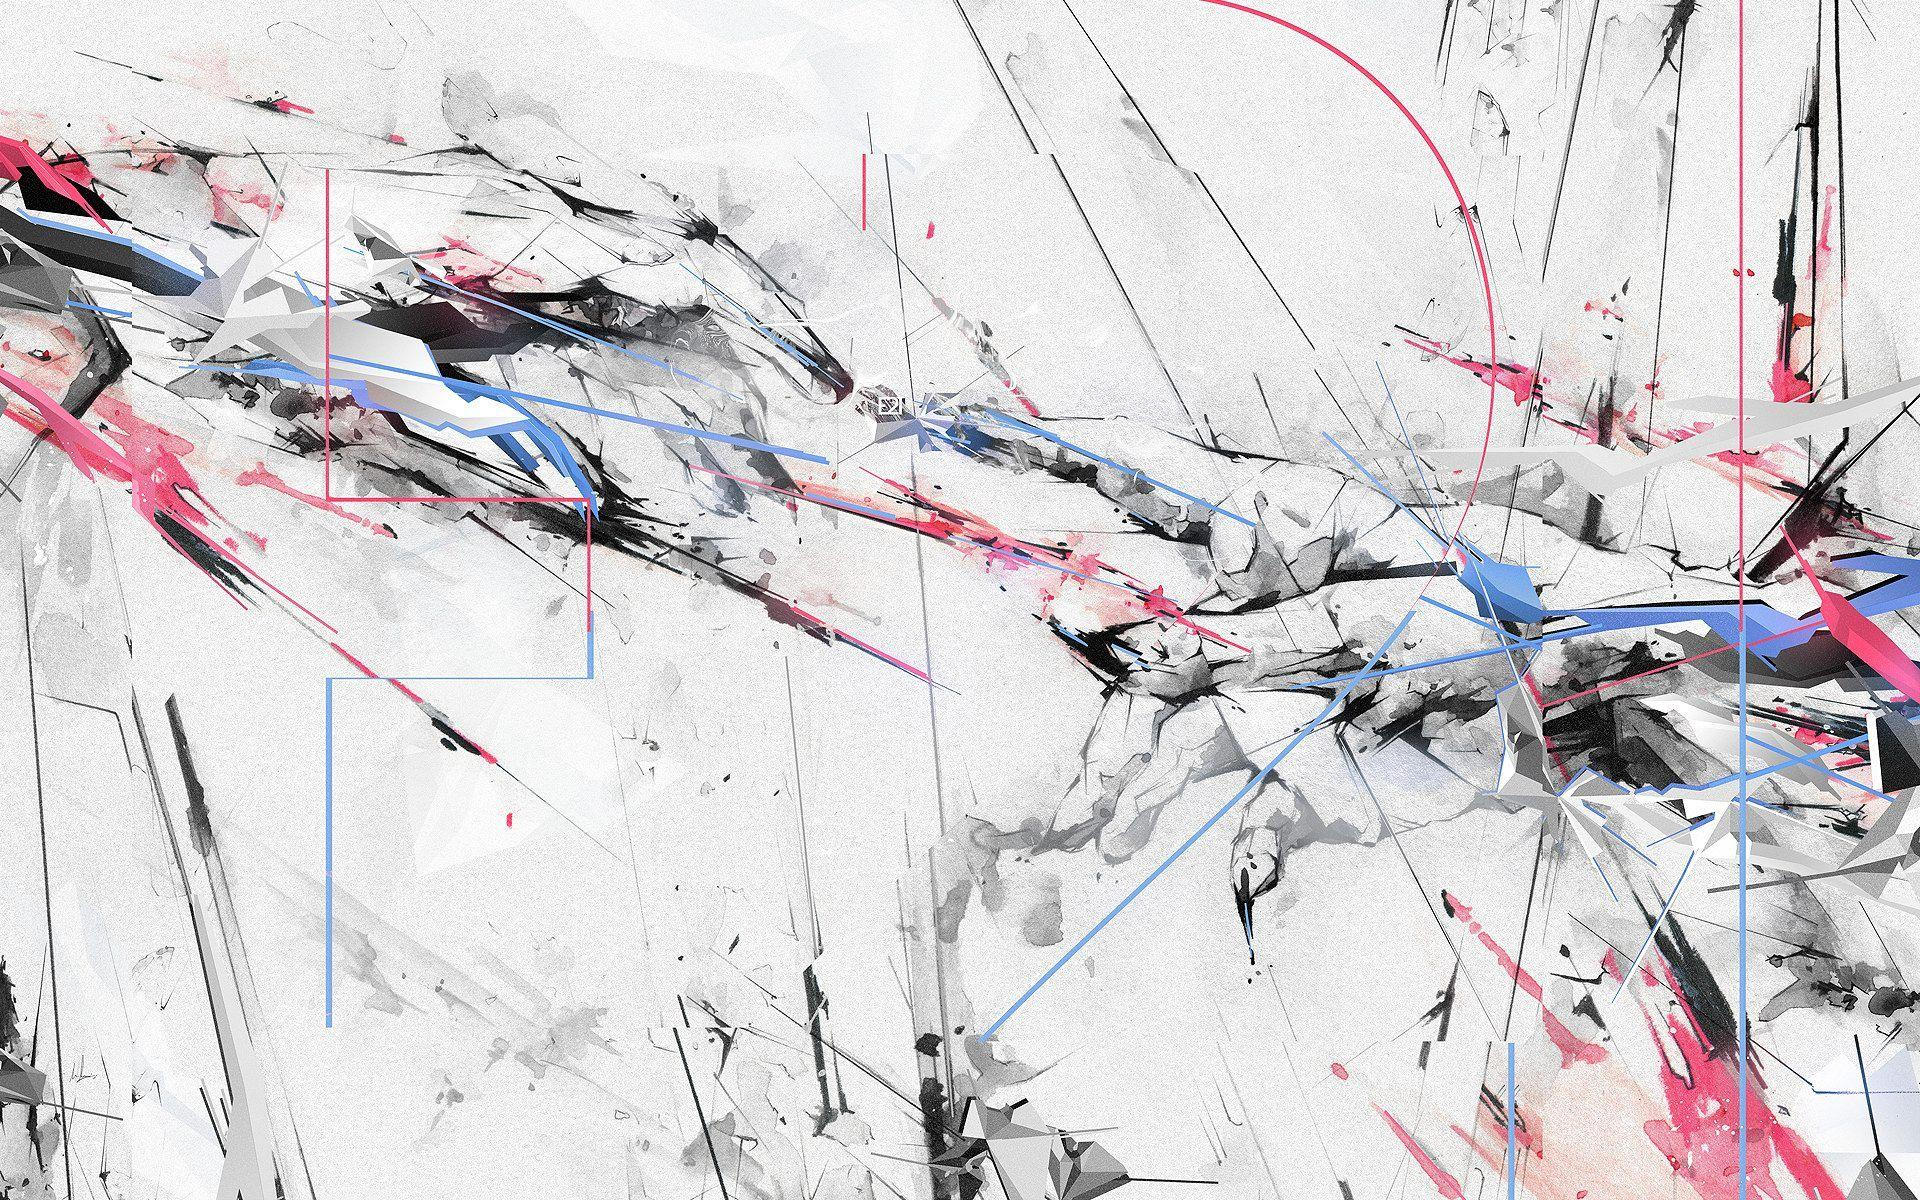 Abstract Paint Color Lines Spray Blue Pink Black Wallpaper - White Abstract Wallpaper 4k - HD Wallpaper